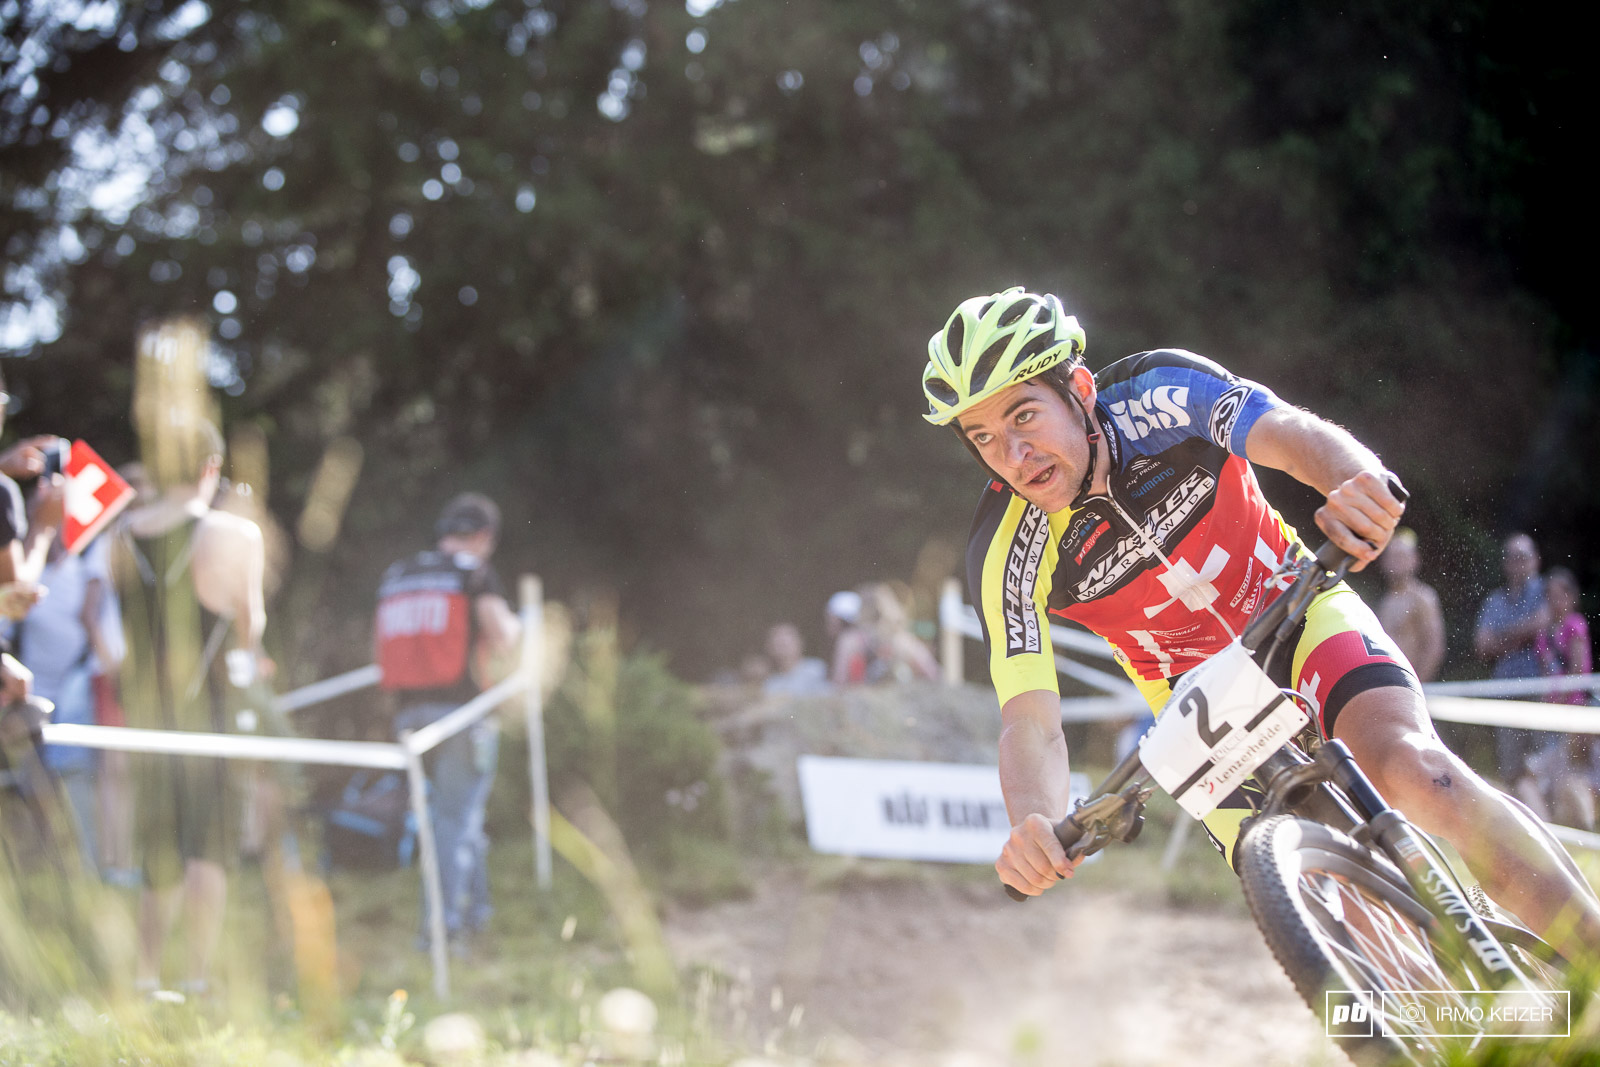 Lars Forster was on a mission wanting to secure a win in his home country.